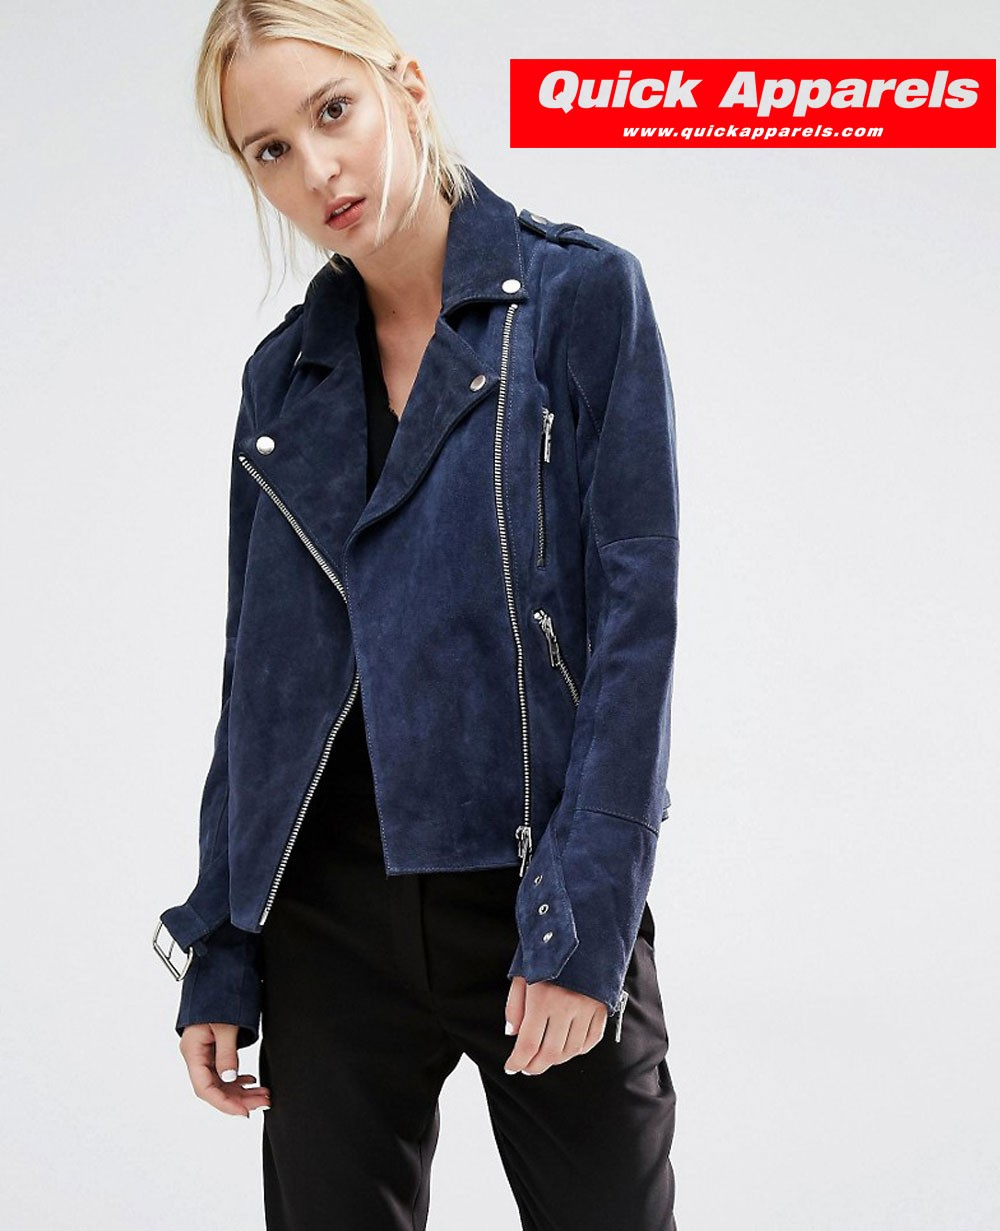 Best Selling Women Biker Jacket in Navy Blue Suede